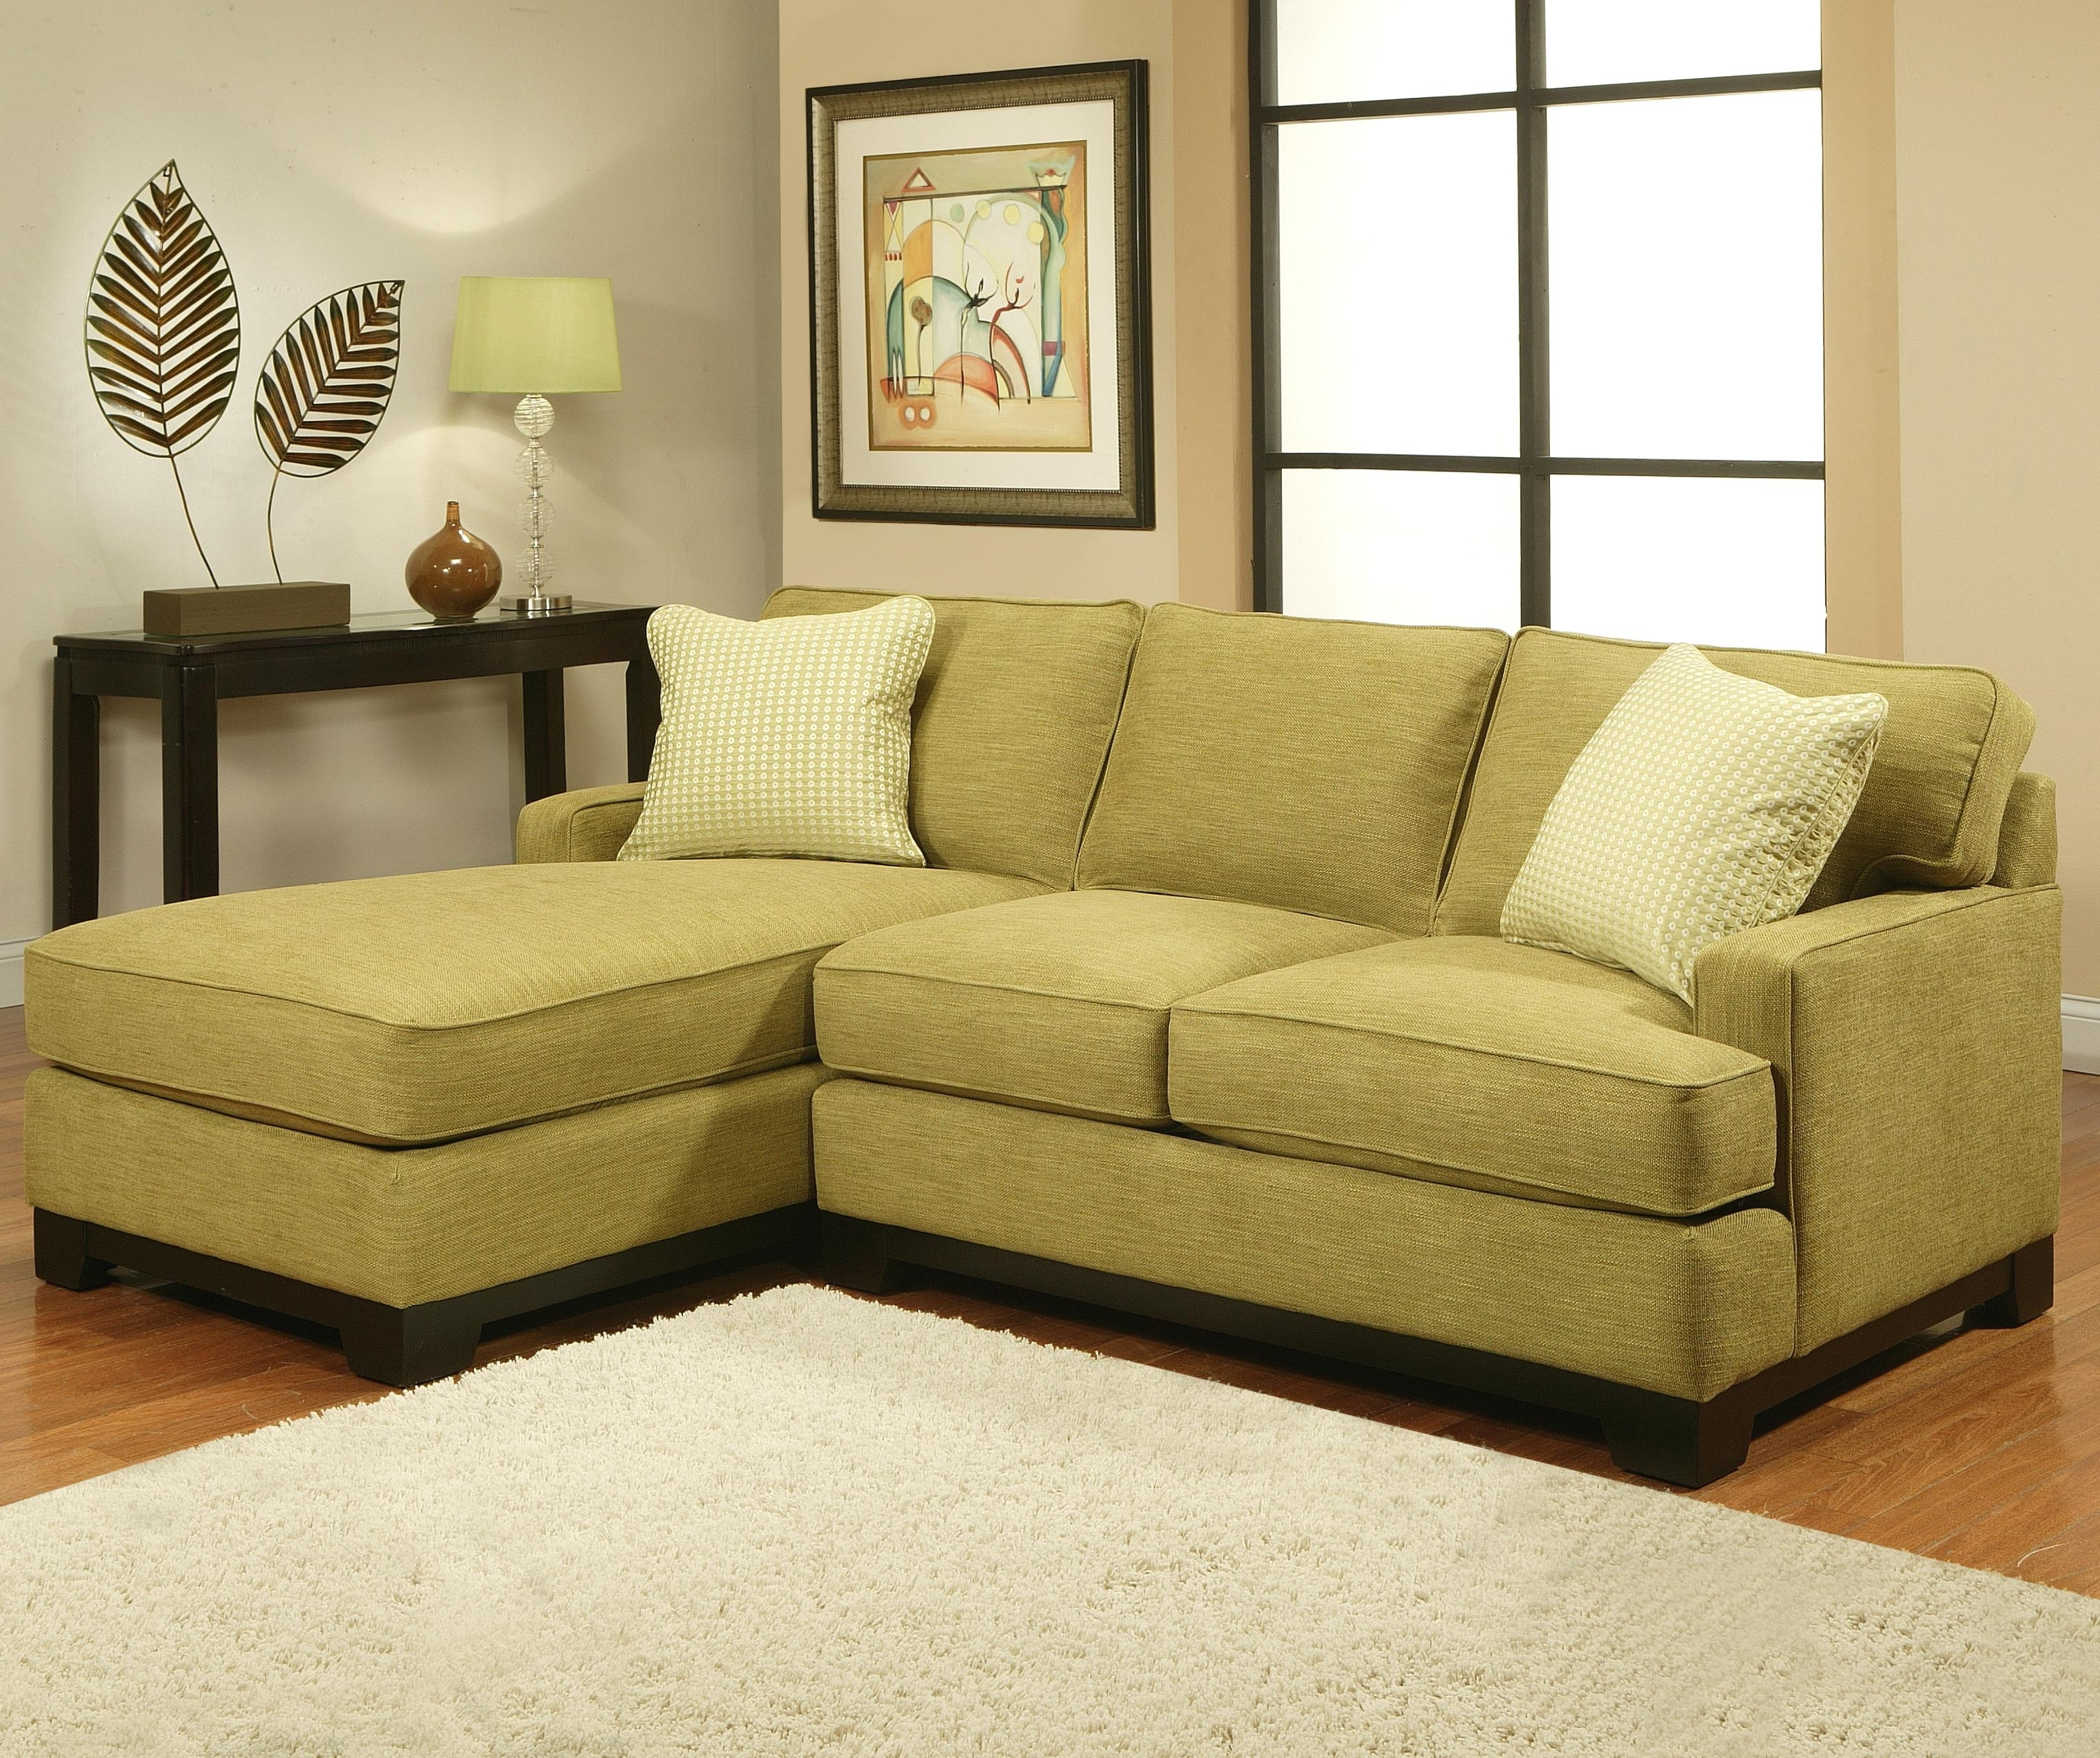 Jonathan Sofas Intended For Fashionable Jonathan Louis Choices – Kronos Contemporary Sectional Sofa With (Gallery 1 of 15)